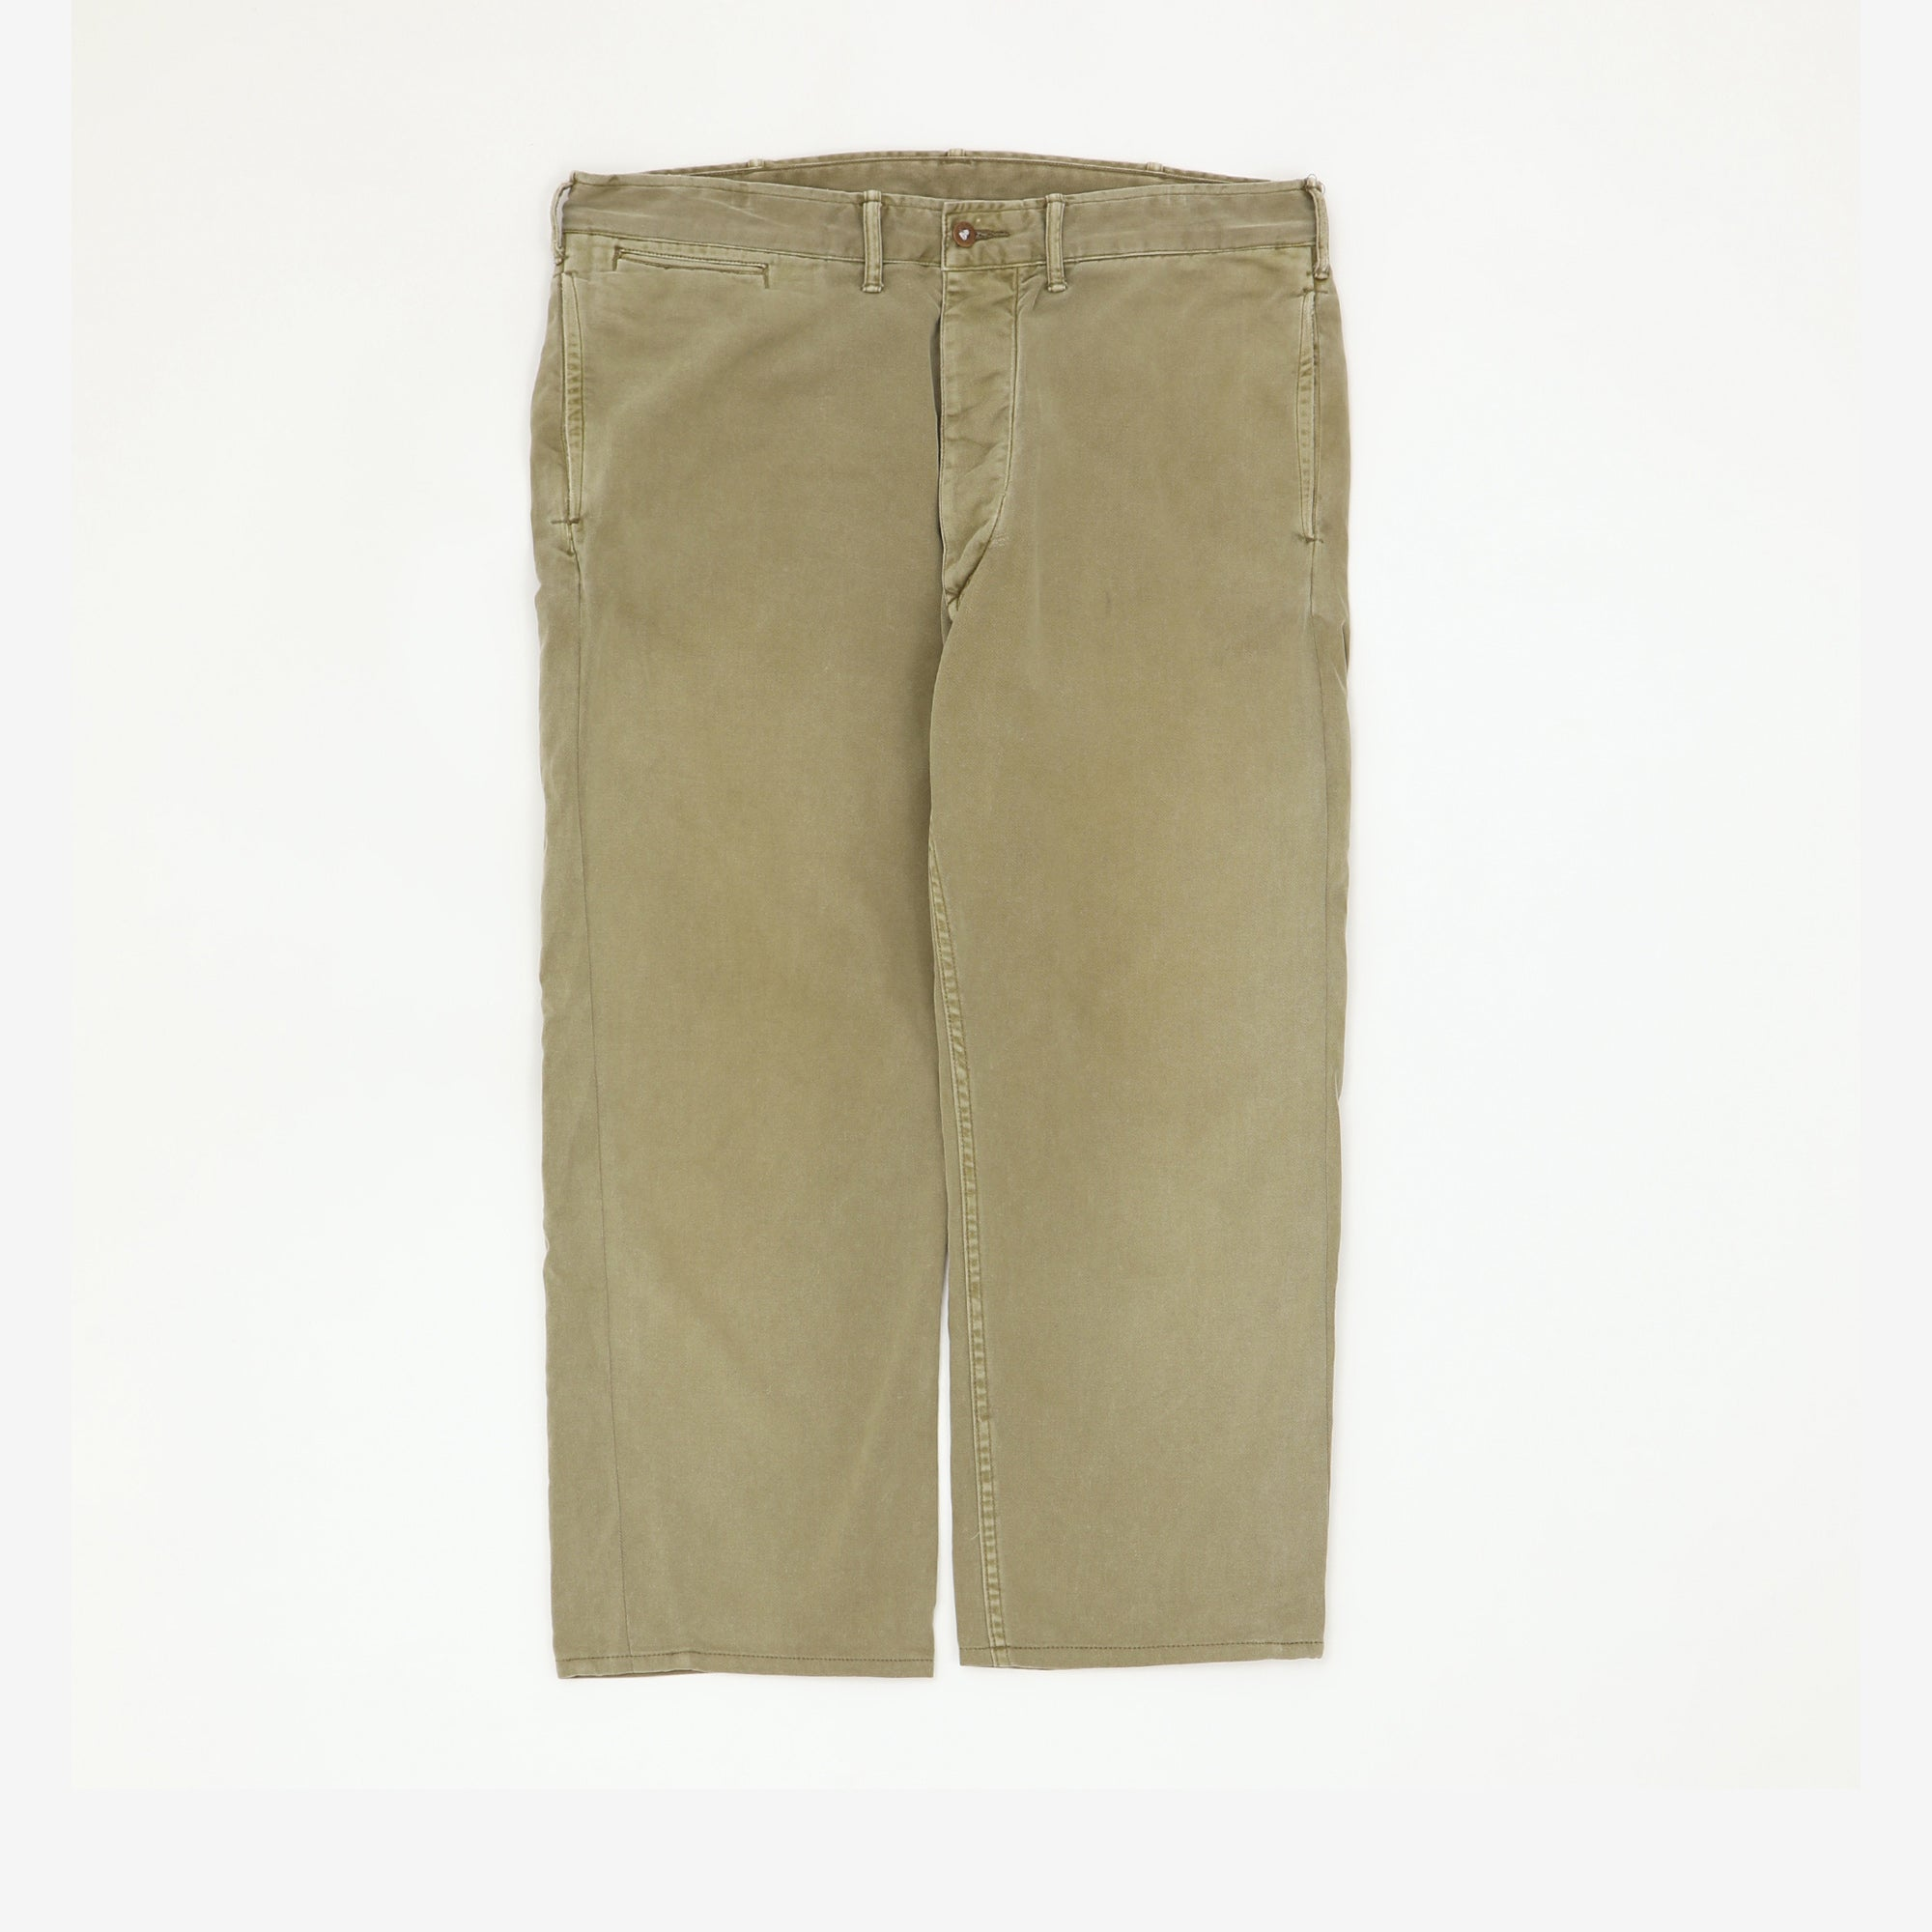 Cotton Twill Officer Chinos